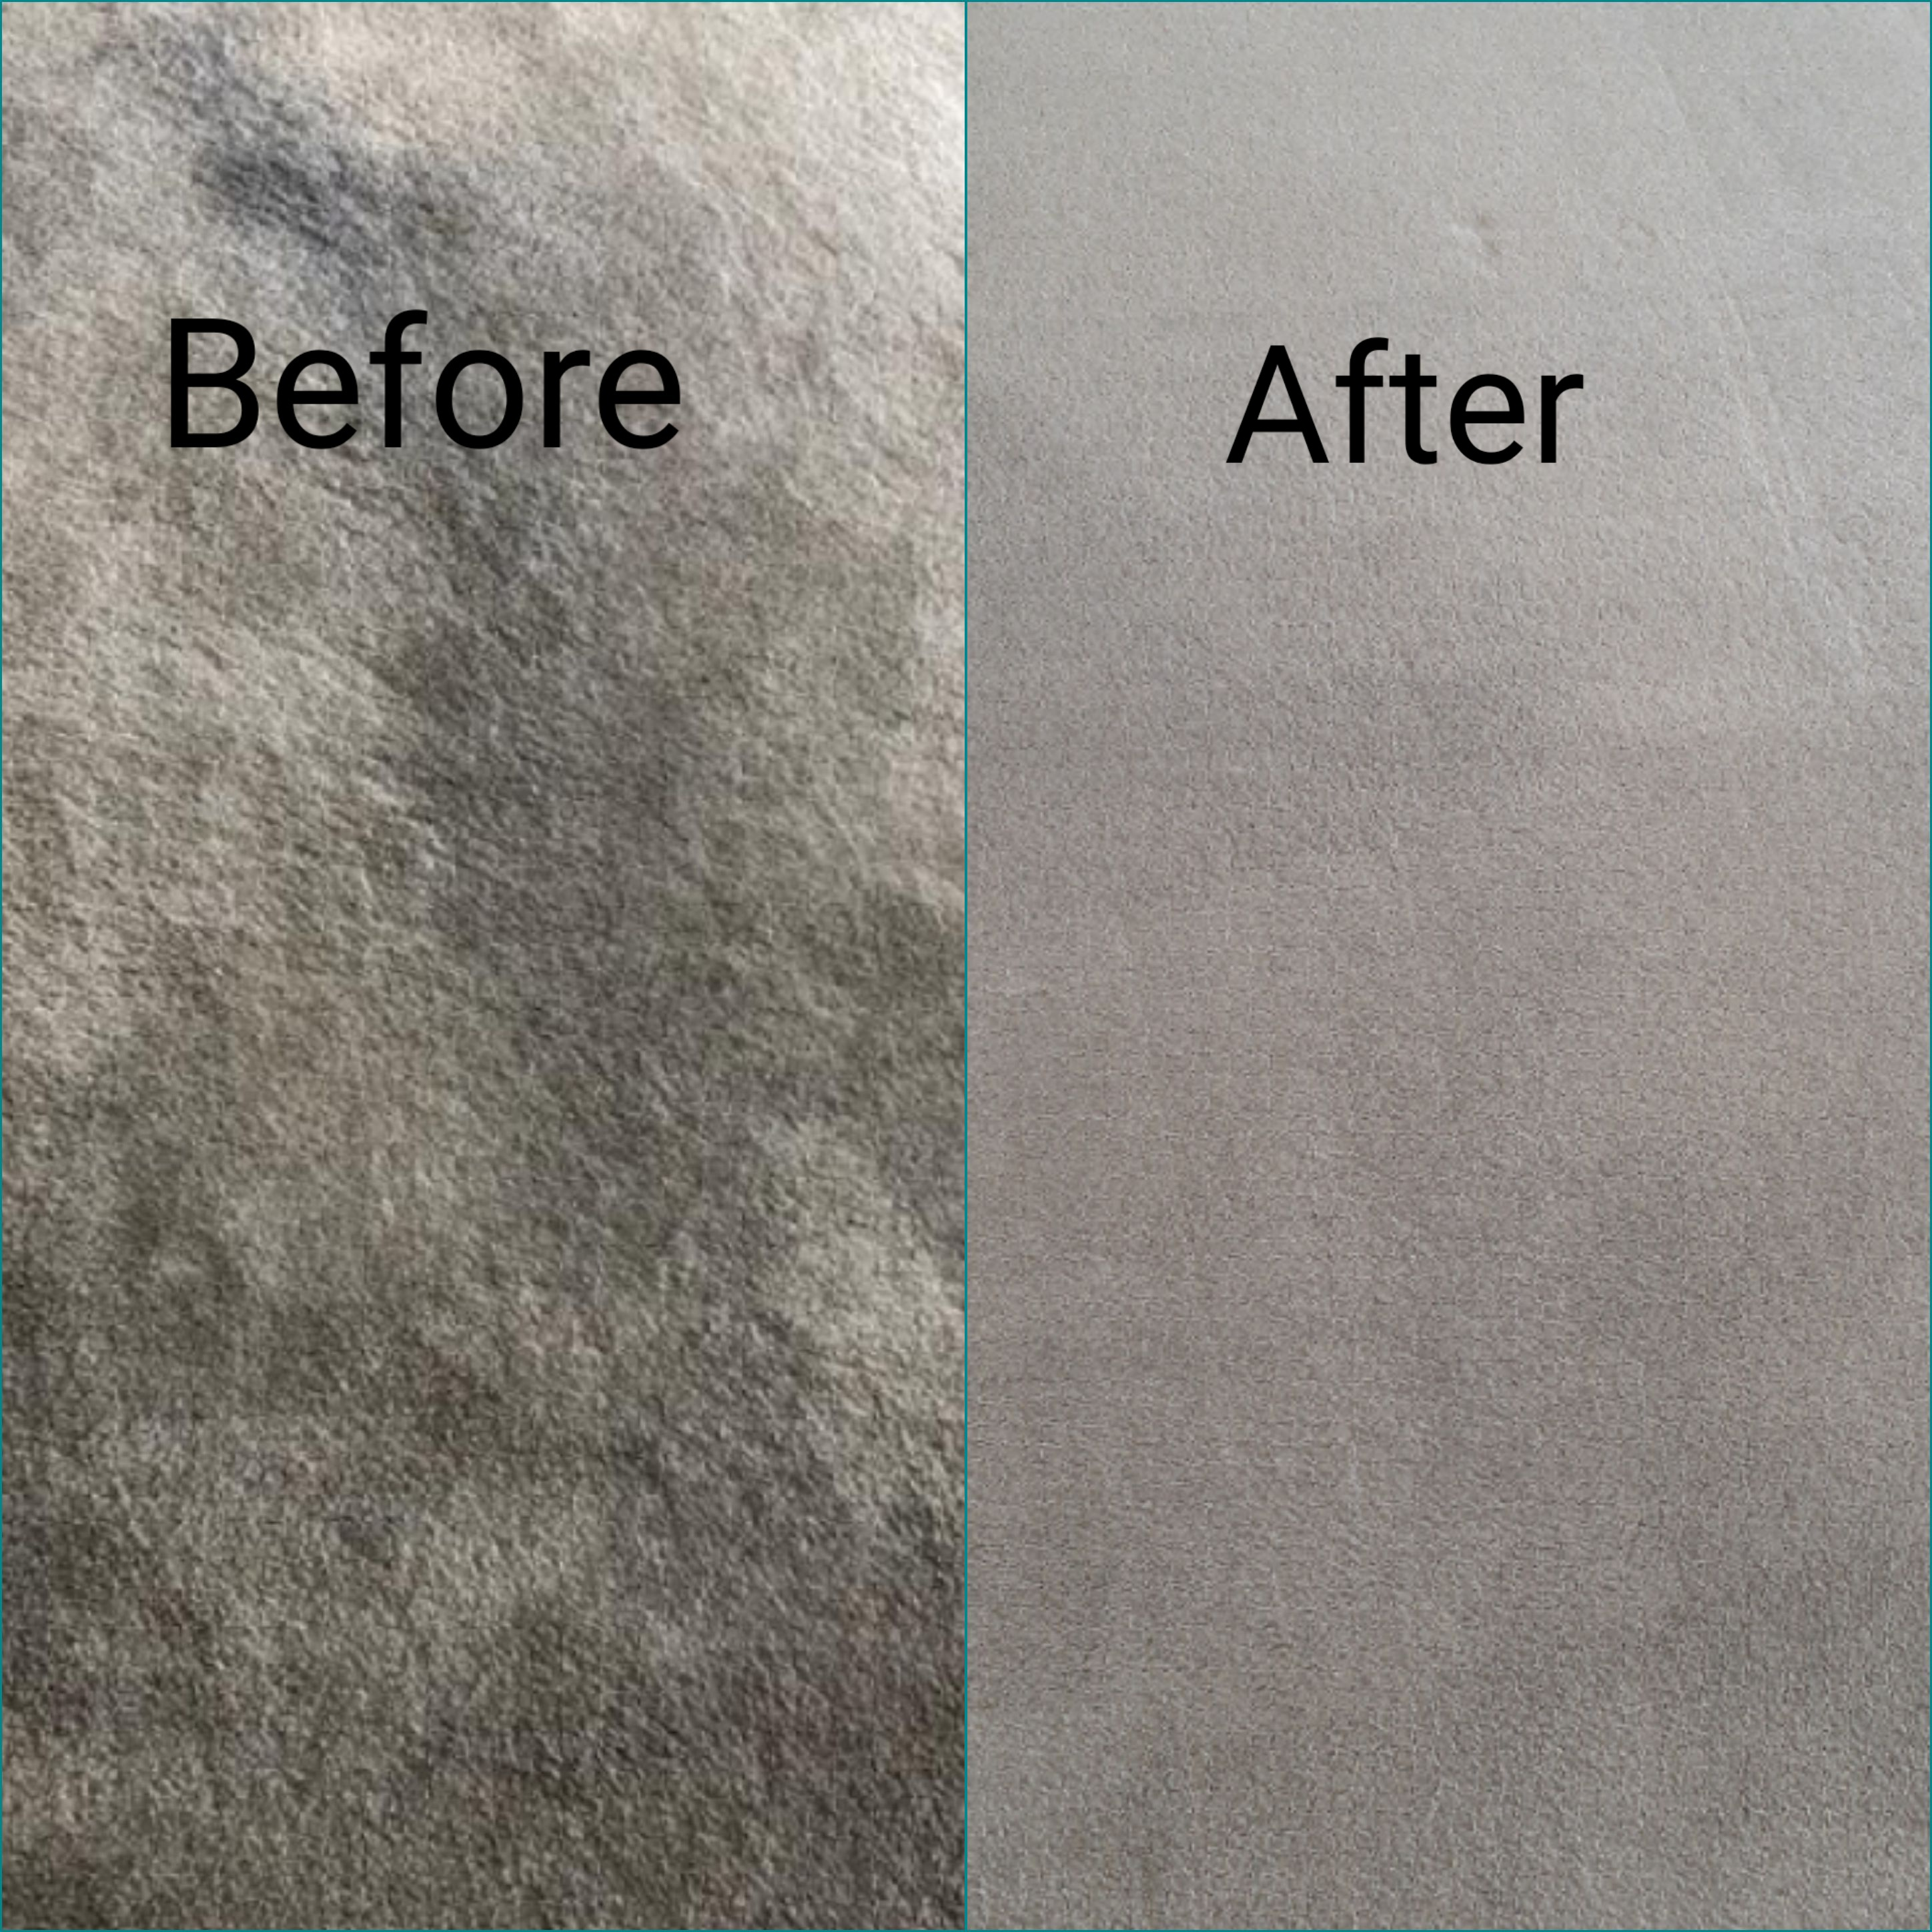 Before After carpet cleaning Sydney